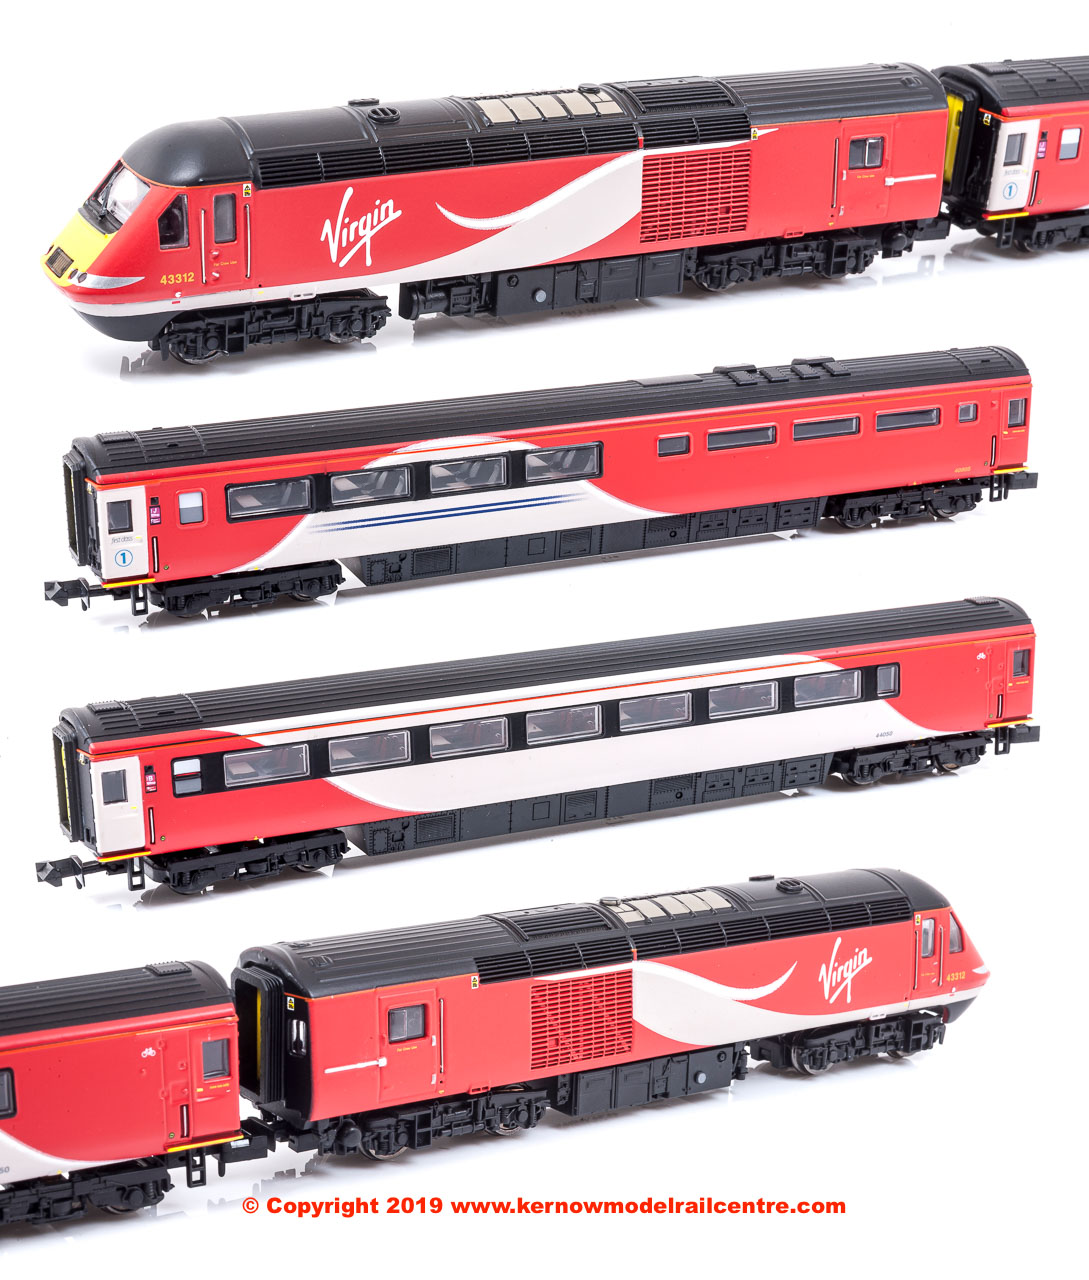 2D-019-007 Dapol Class 43 HST Virgin East Coast Book Set